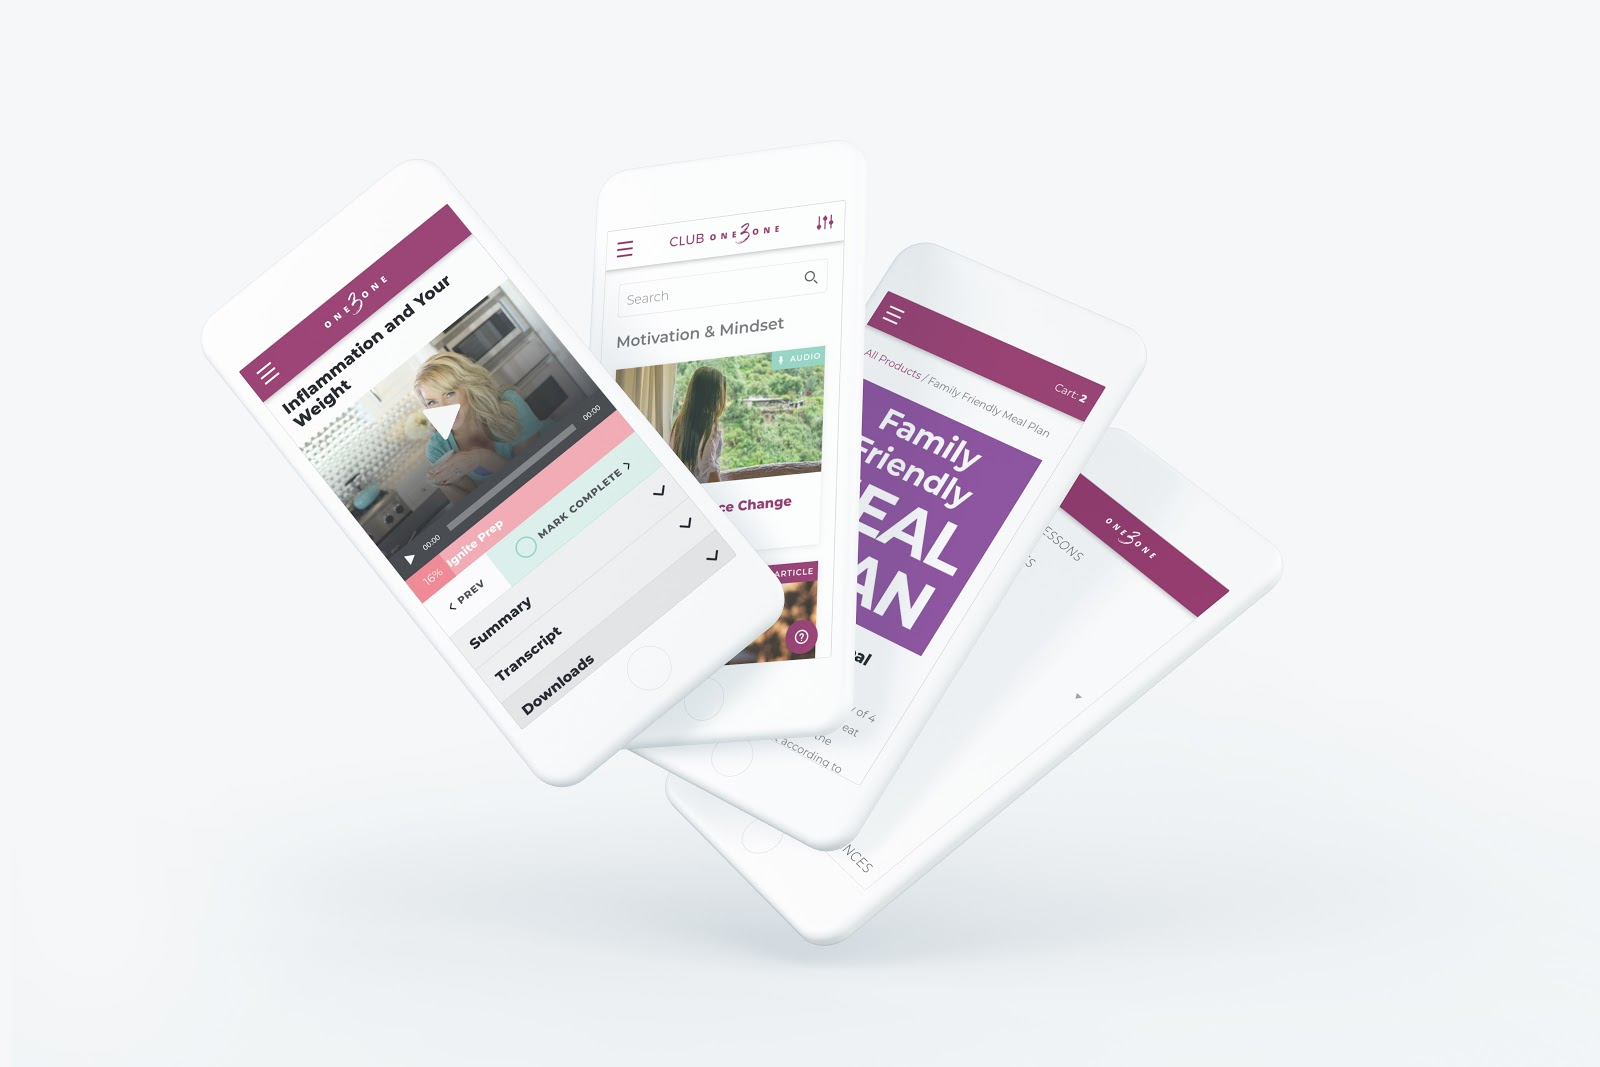 a rendering of screenshots from an app designed by rareview.